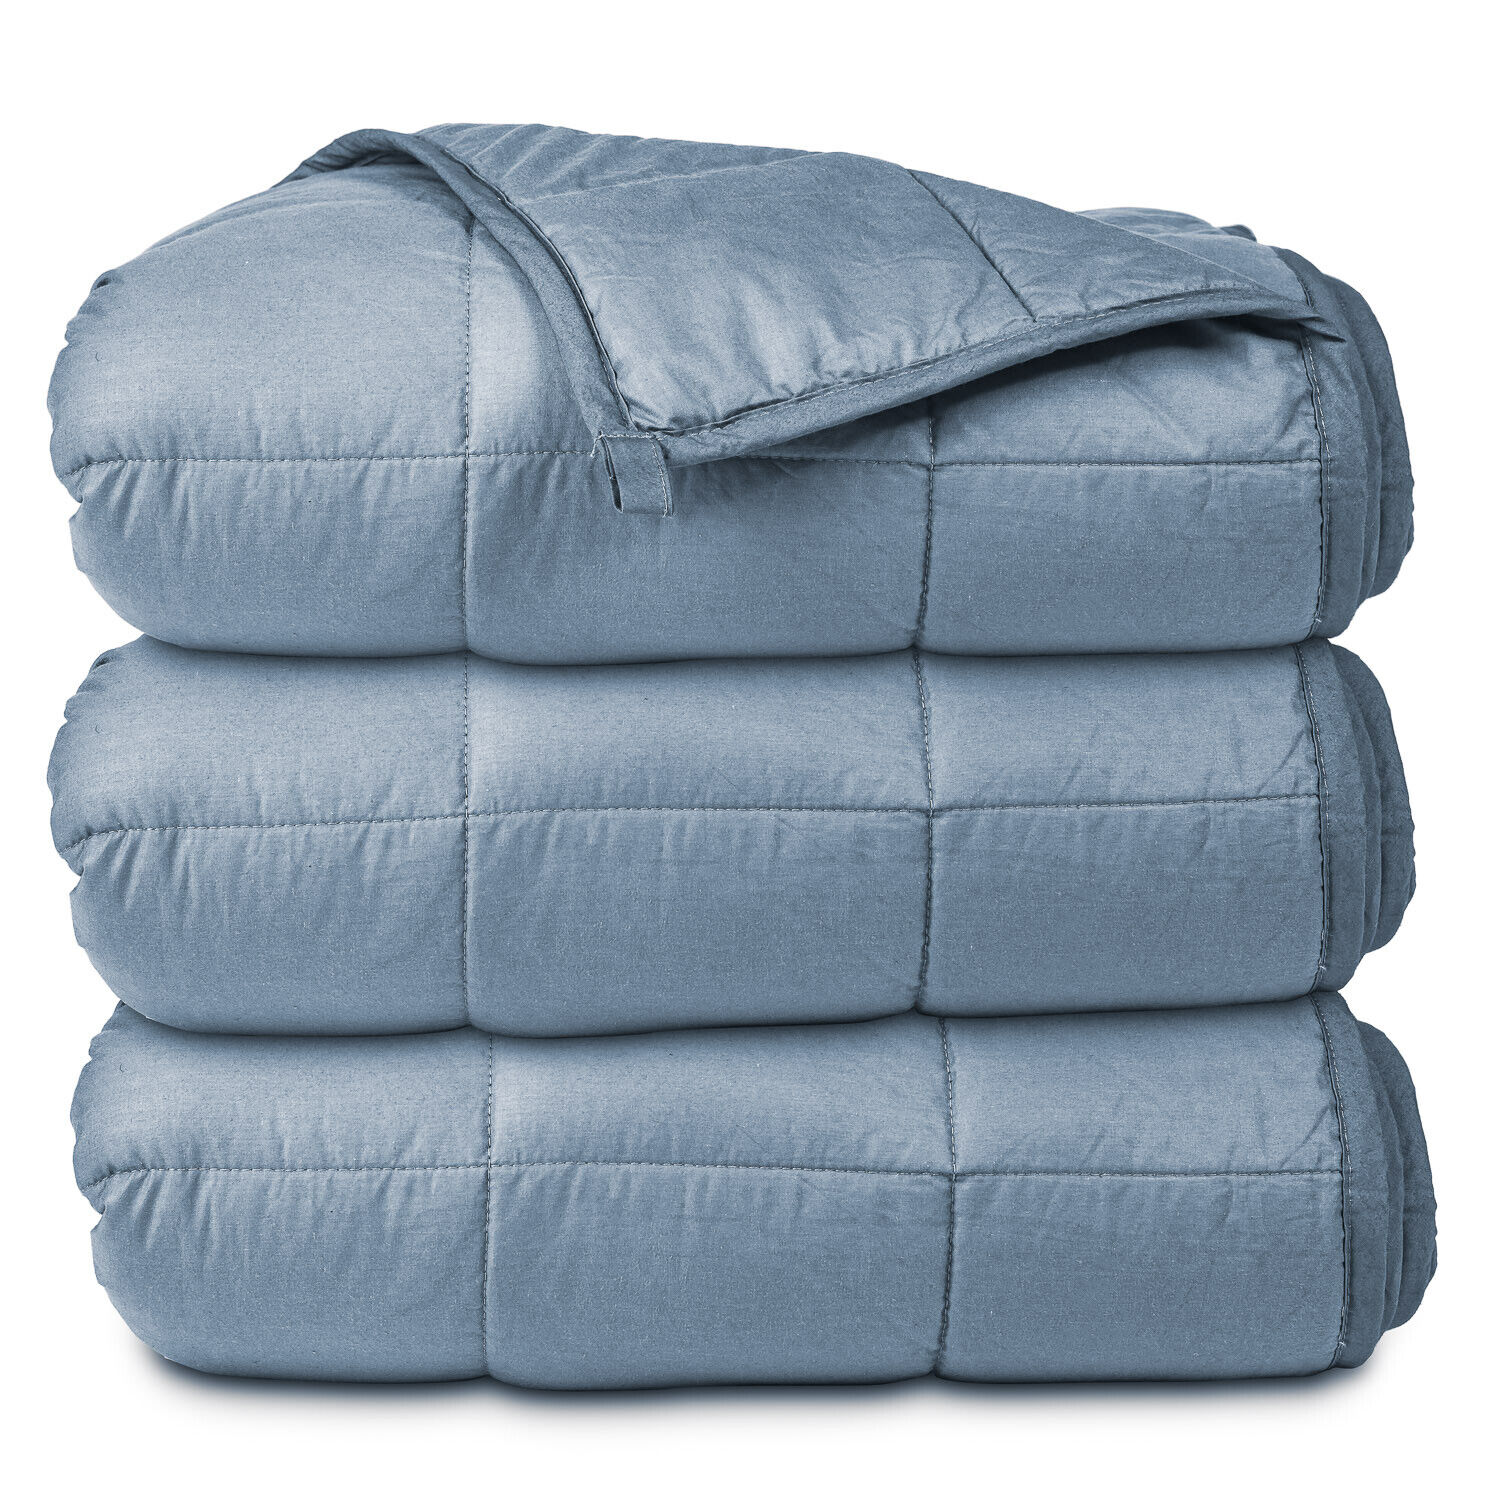 Weighted Gray Blanket - 20 LB - Twin / Queen - Buffalo Sherp